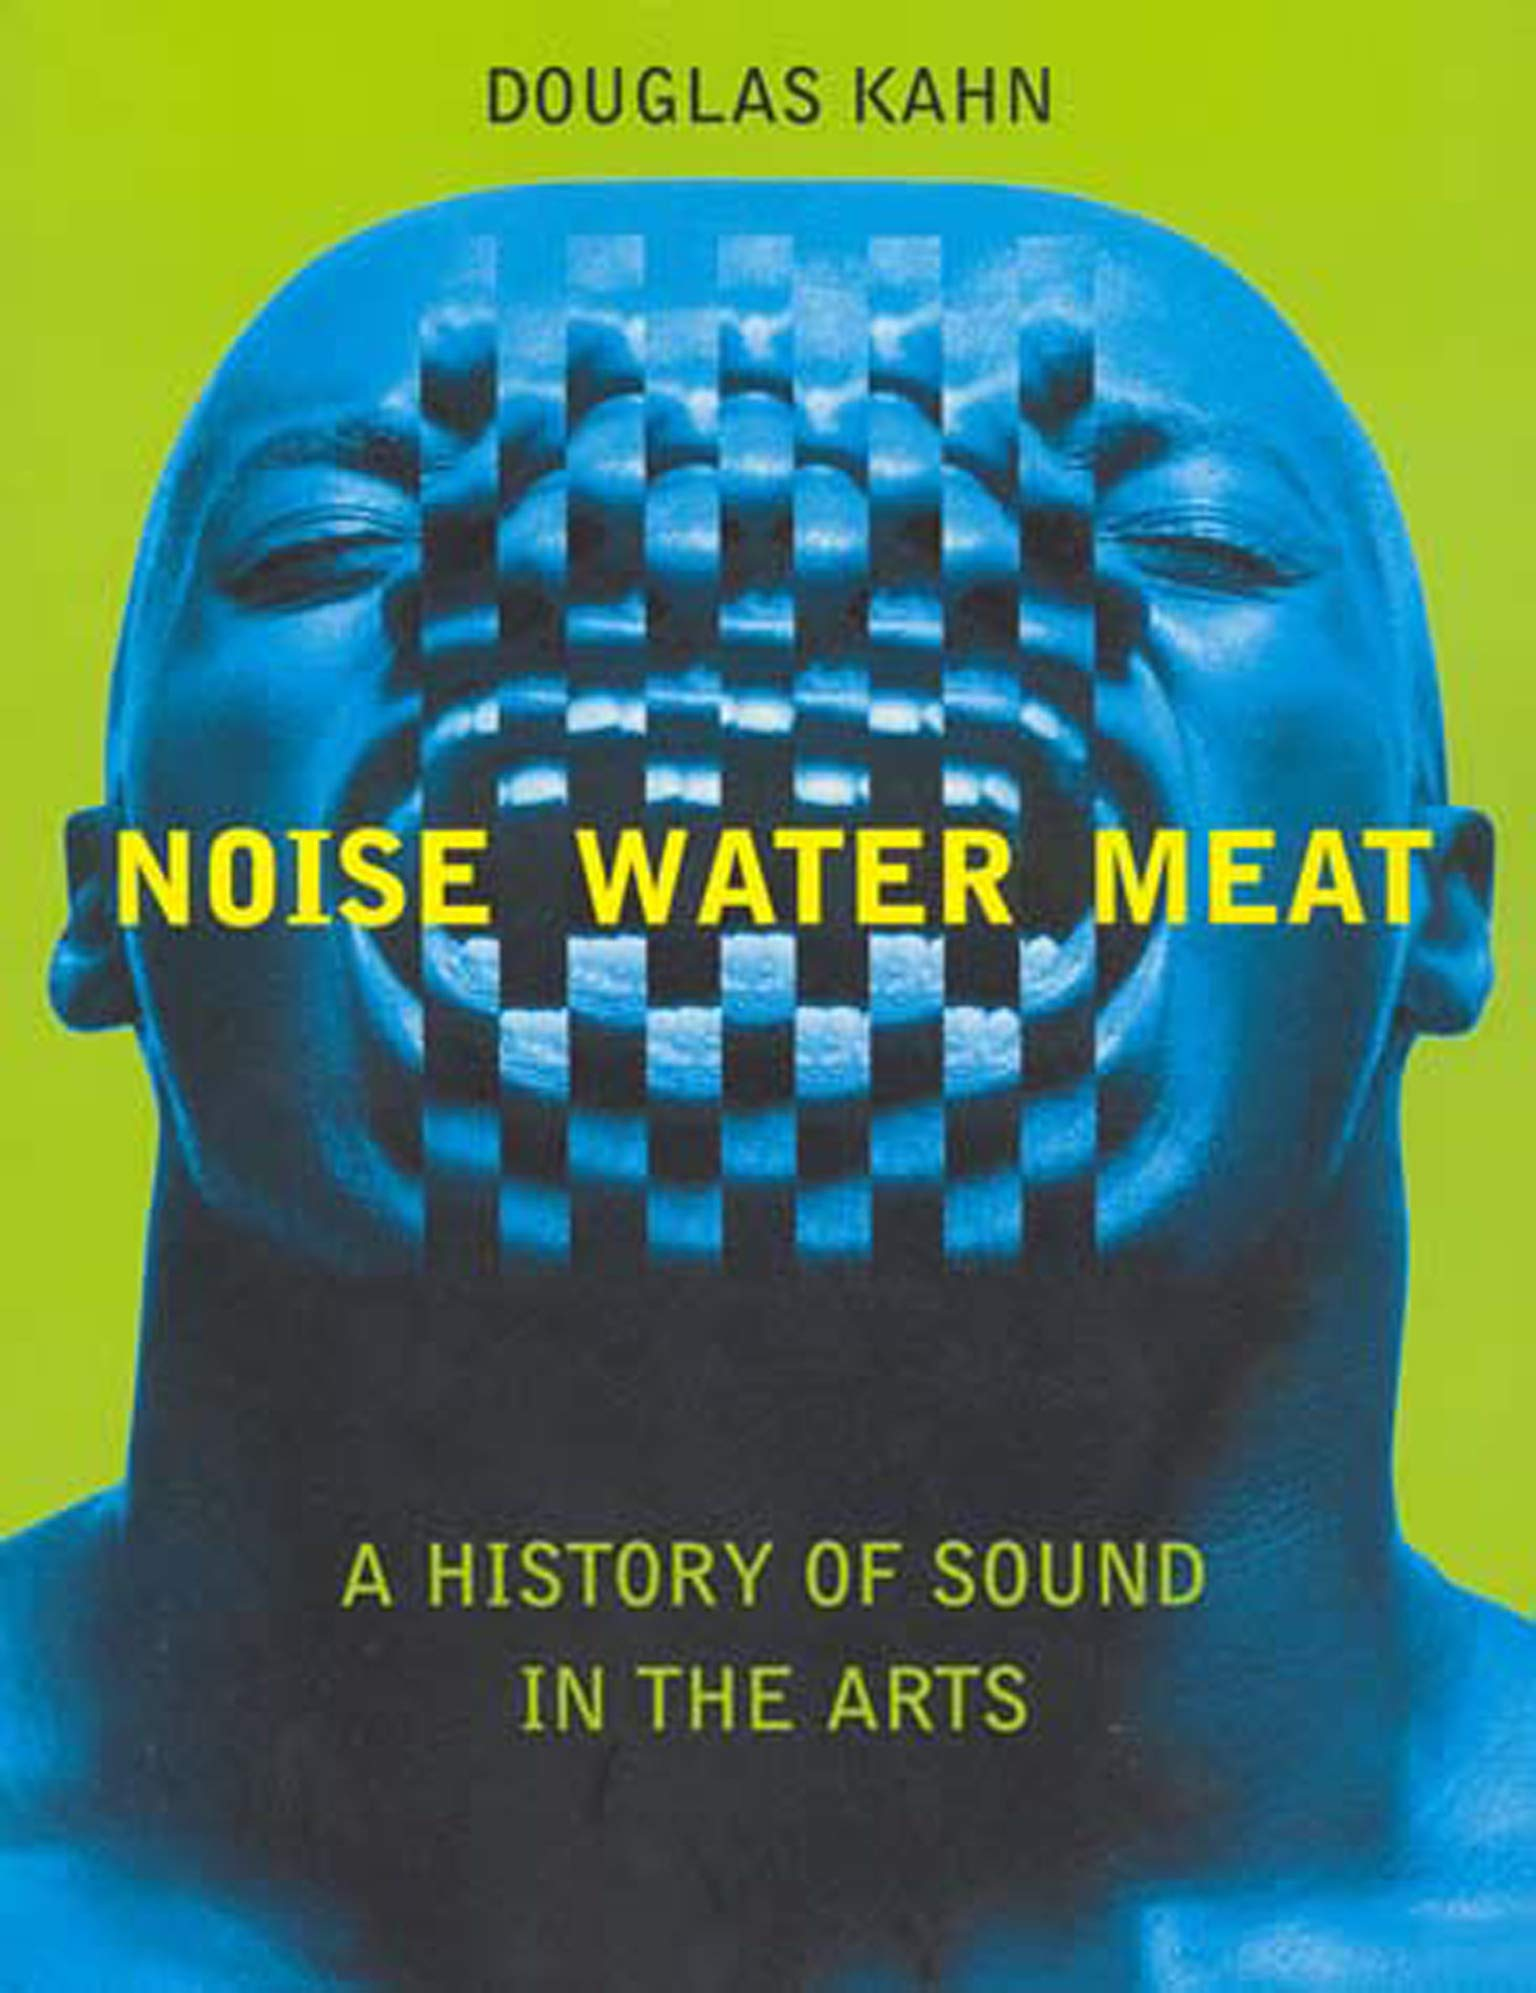 Kahn Douglas. Noise, Water, Meat: A History of Sound in the Arts, The MIT Press, 1999